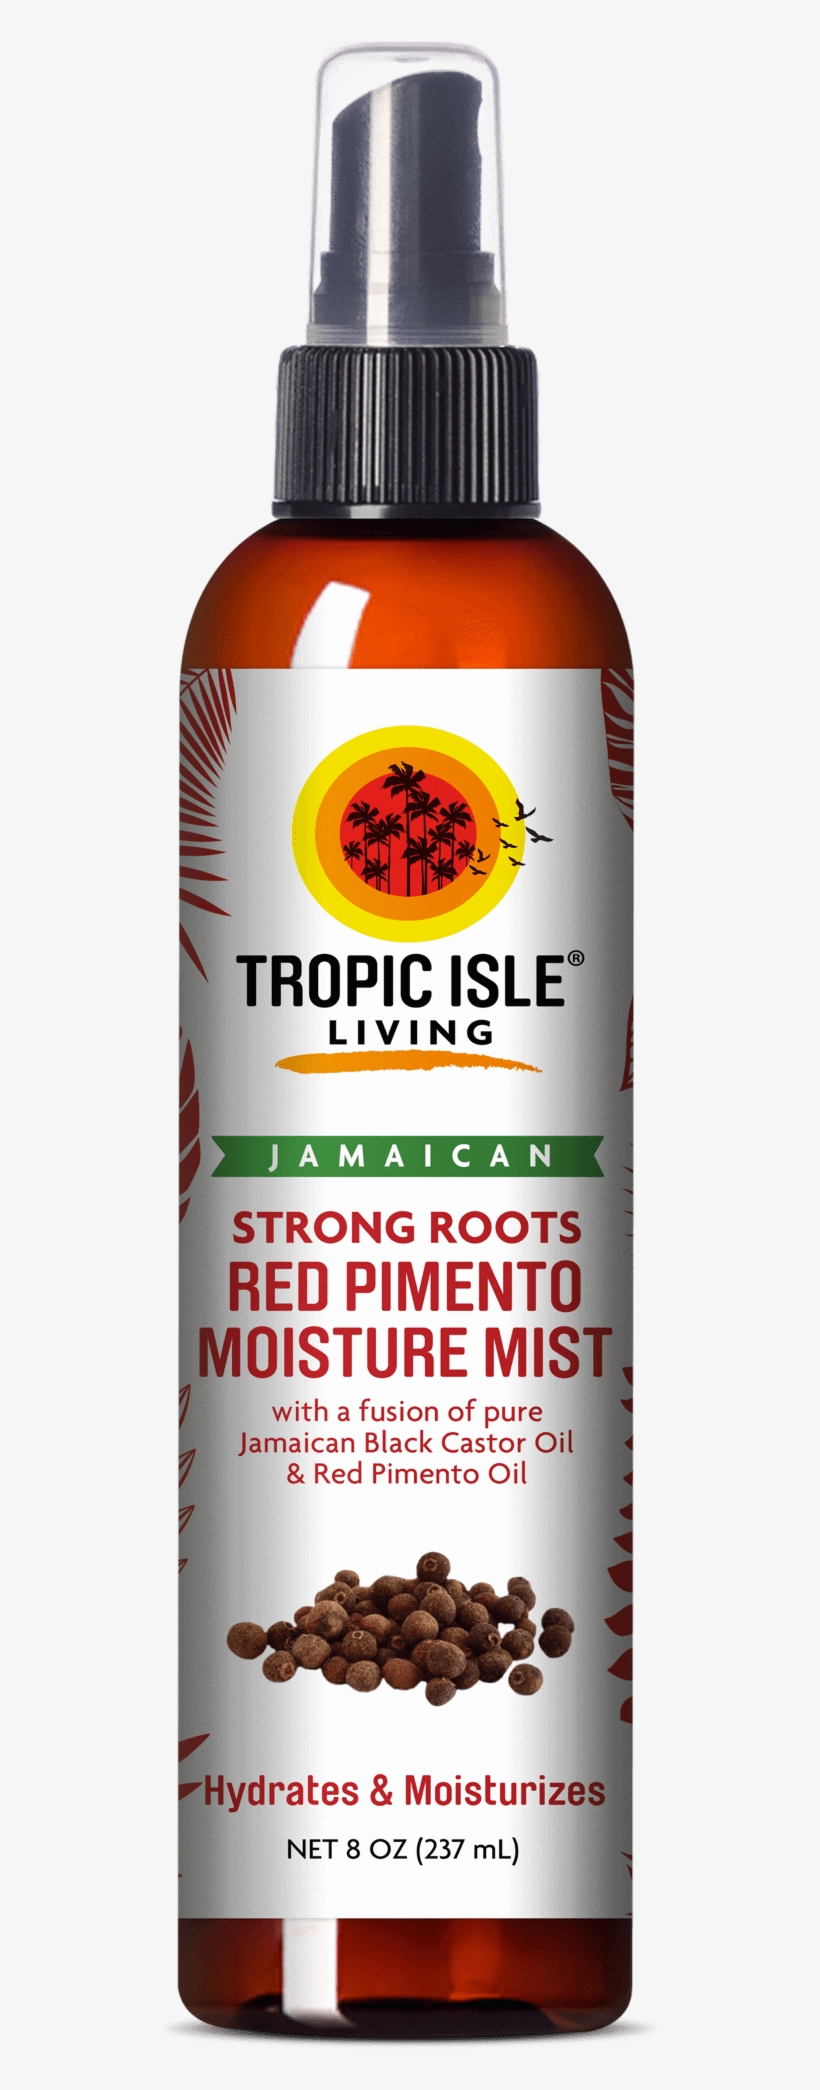 Strong Roots Red Pimento Moisture Mist - Tropic Isle Leave In Conditioner And Detangler, transparent png #348670